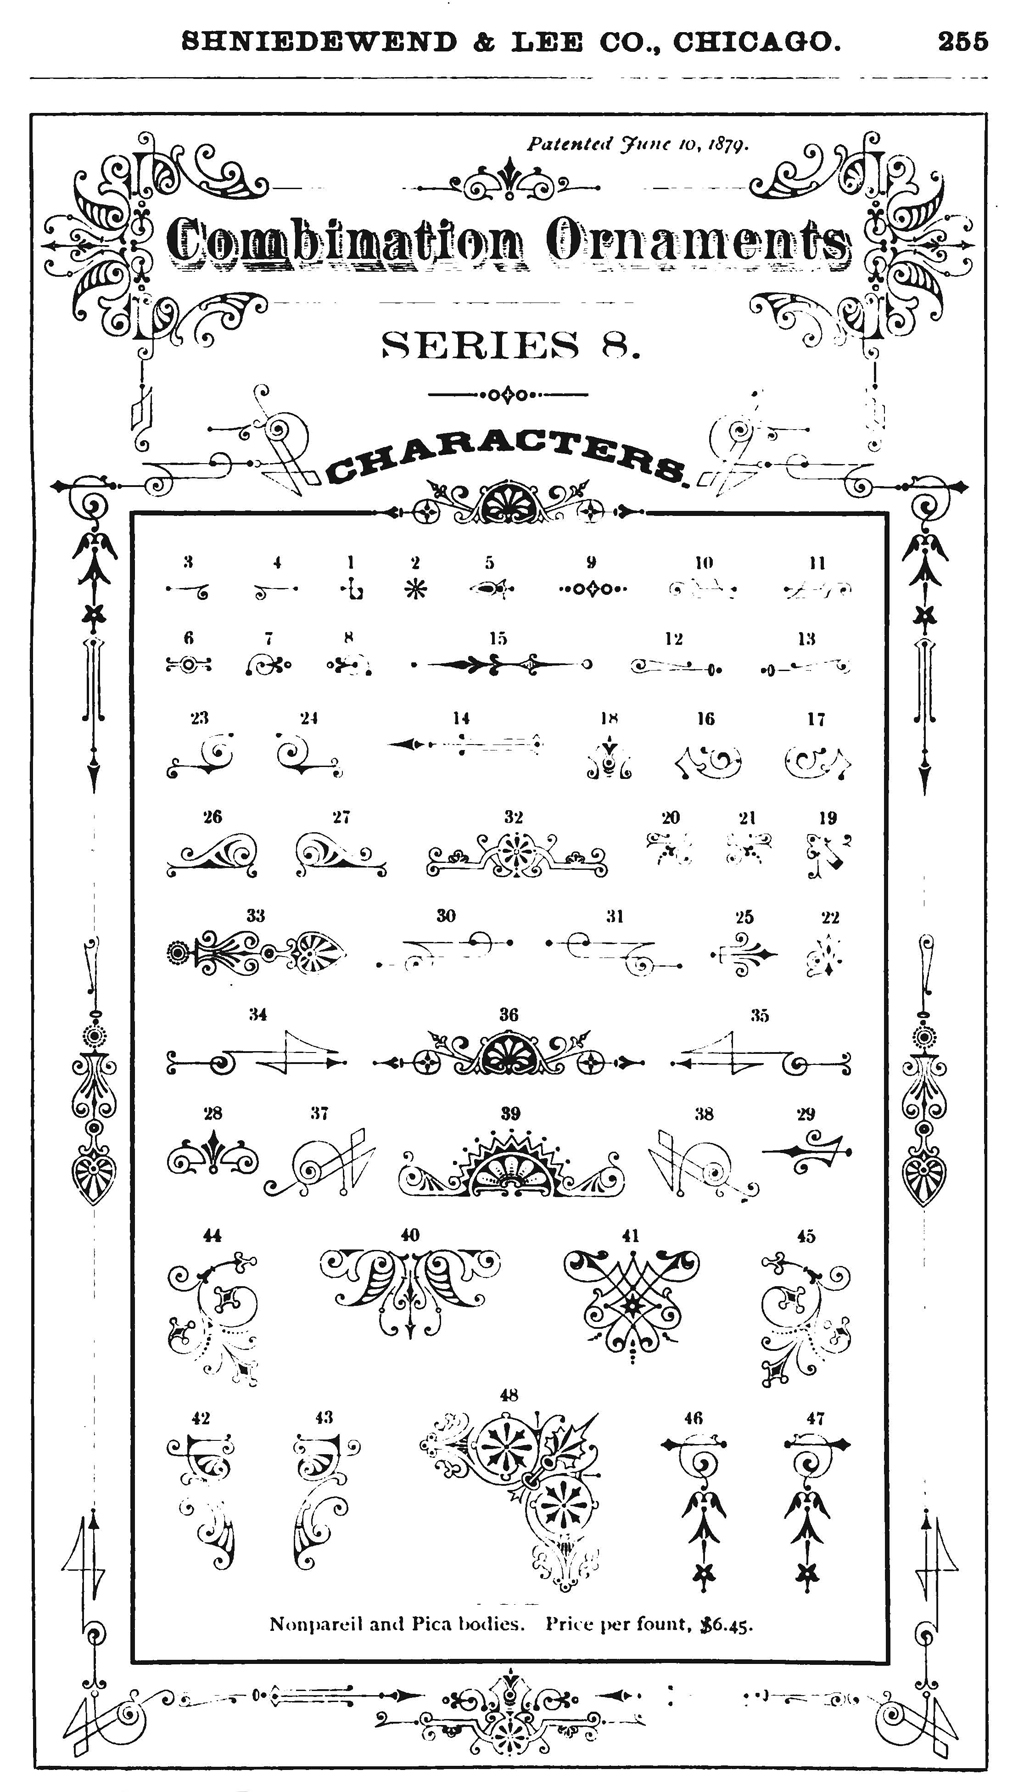 Combinations Ornaments Series 8. From Shniedewend & Lee Co. (Chicago: Shniedewend & Lee Co., 1888).